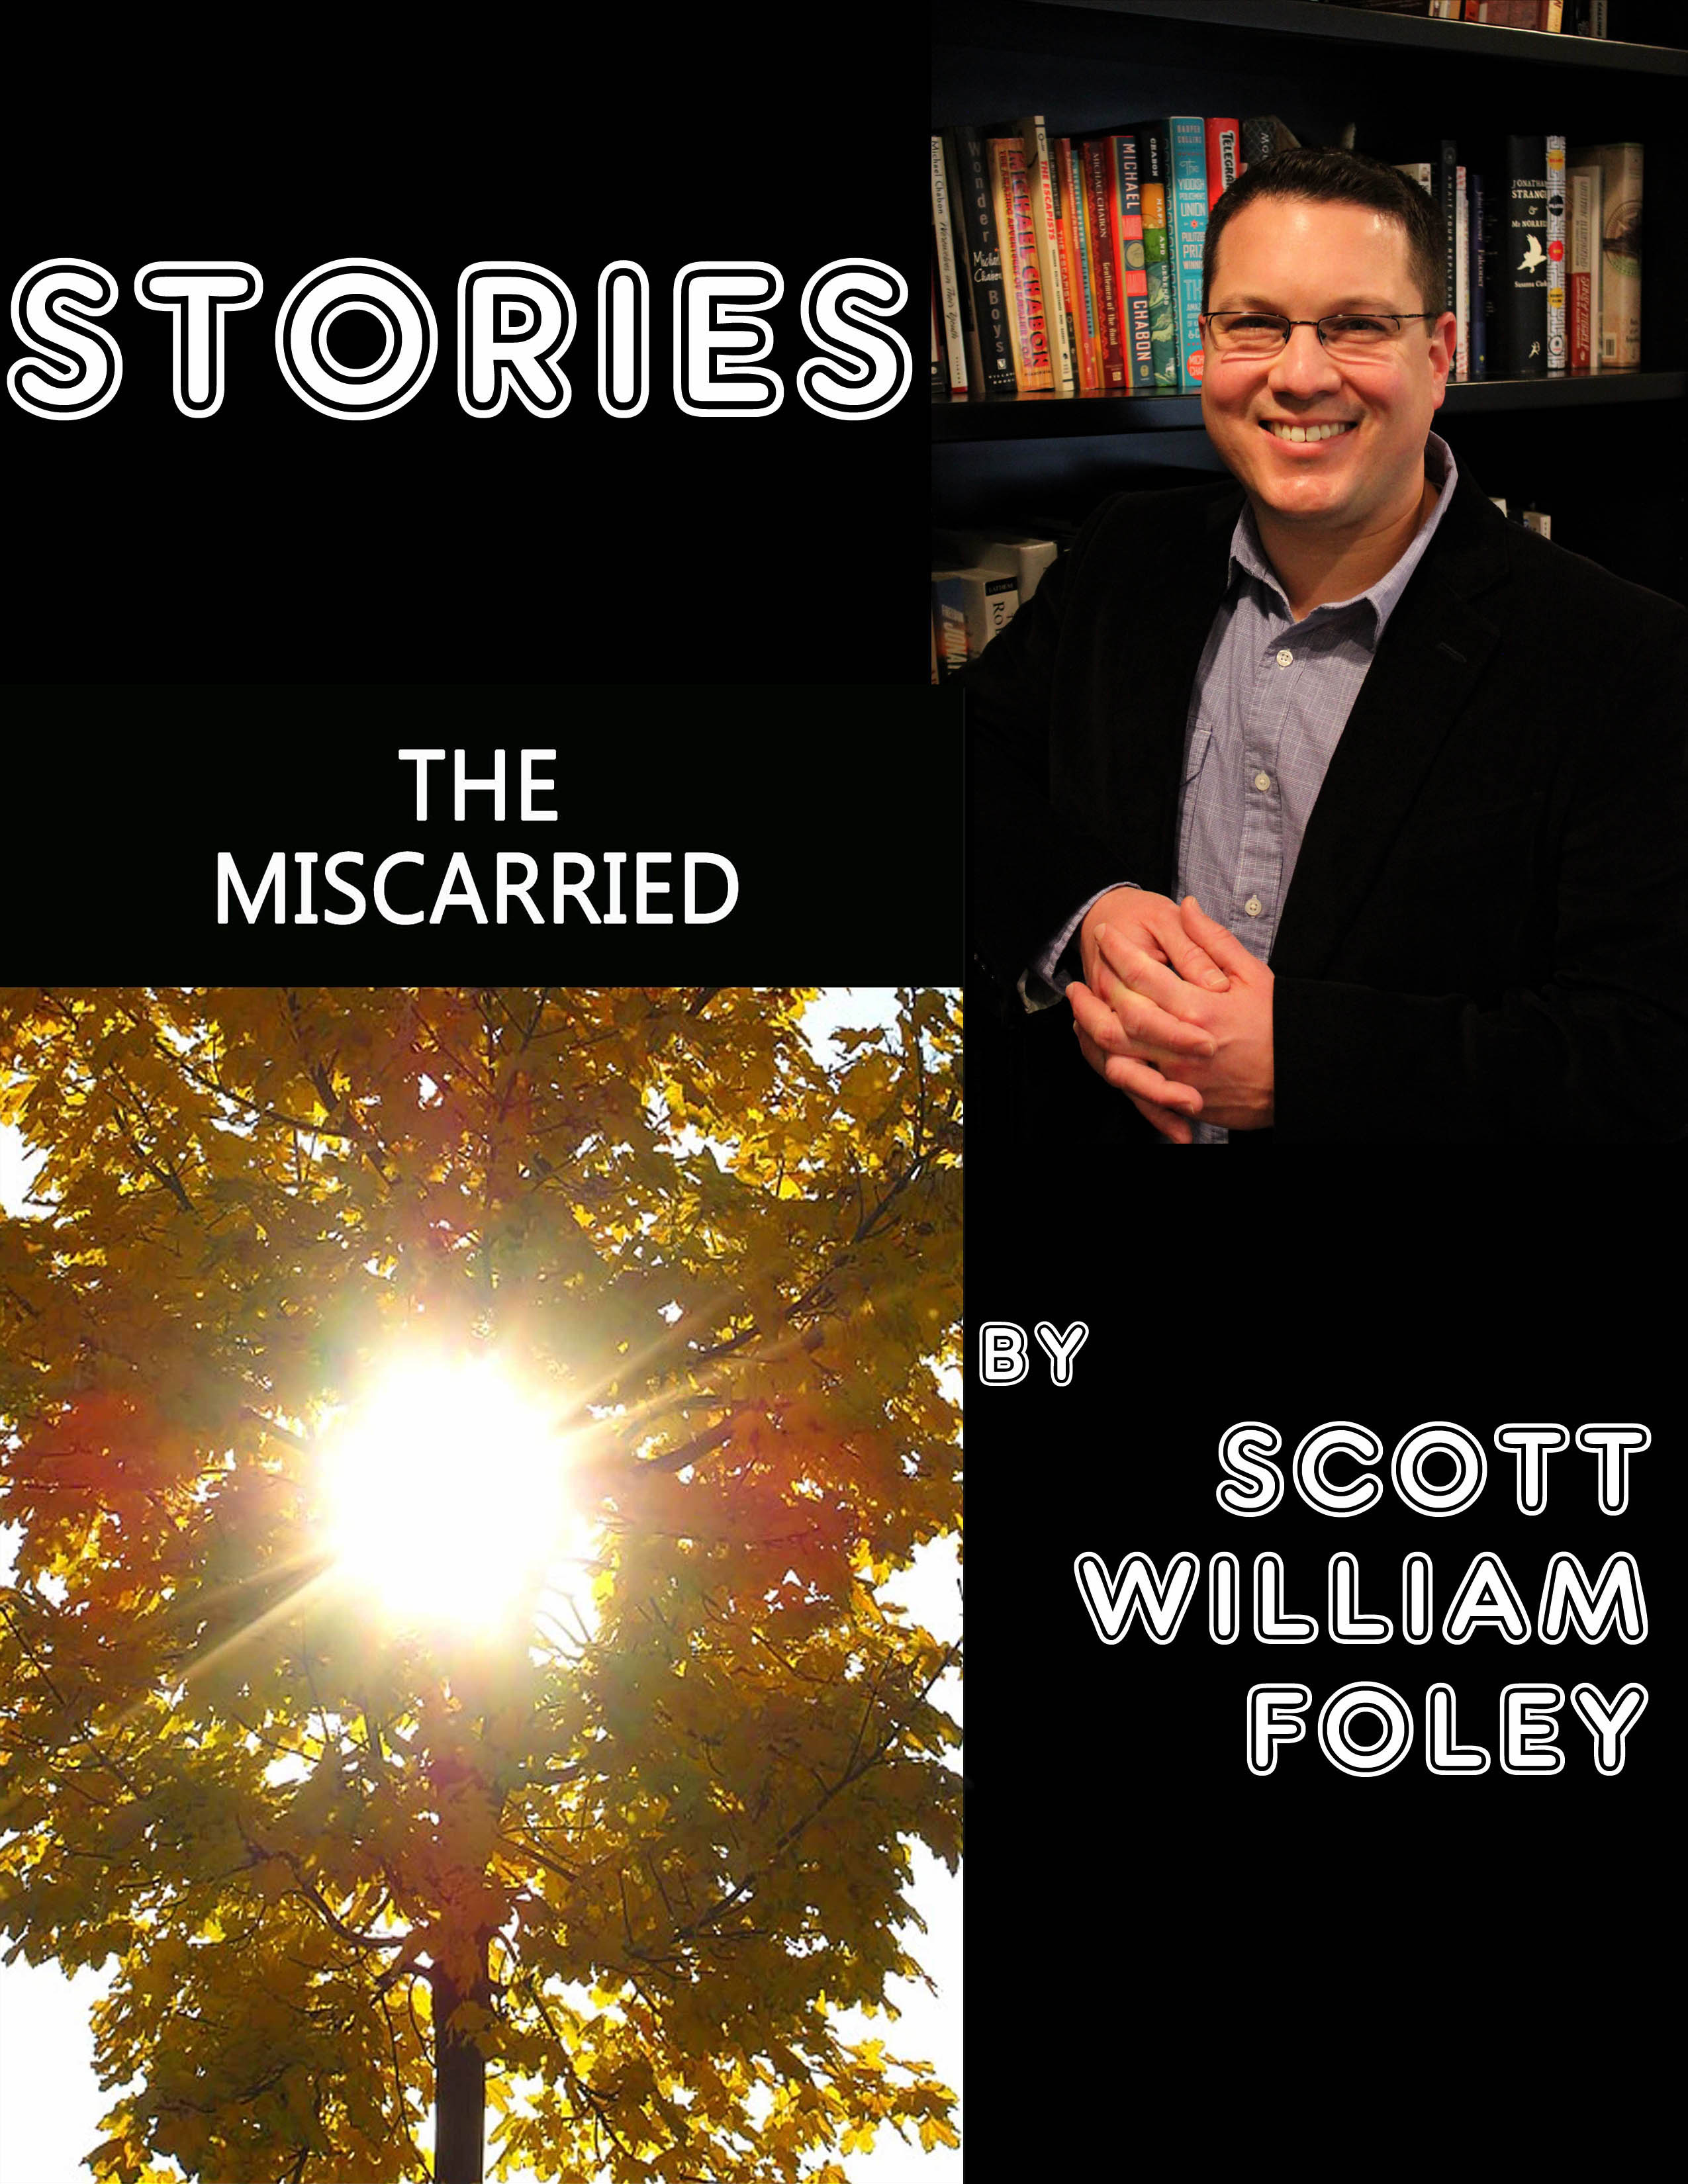 The Miscarried